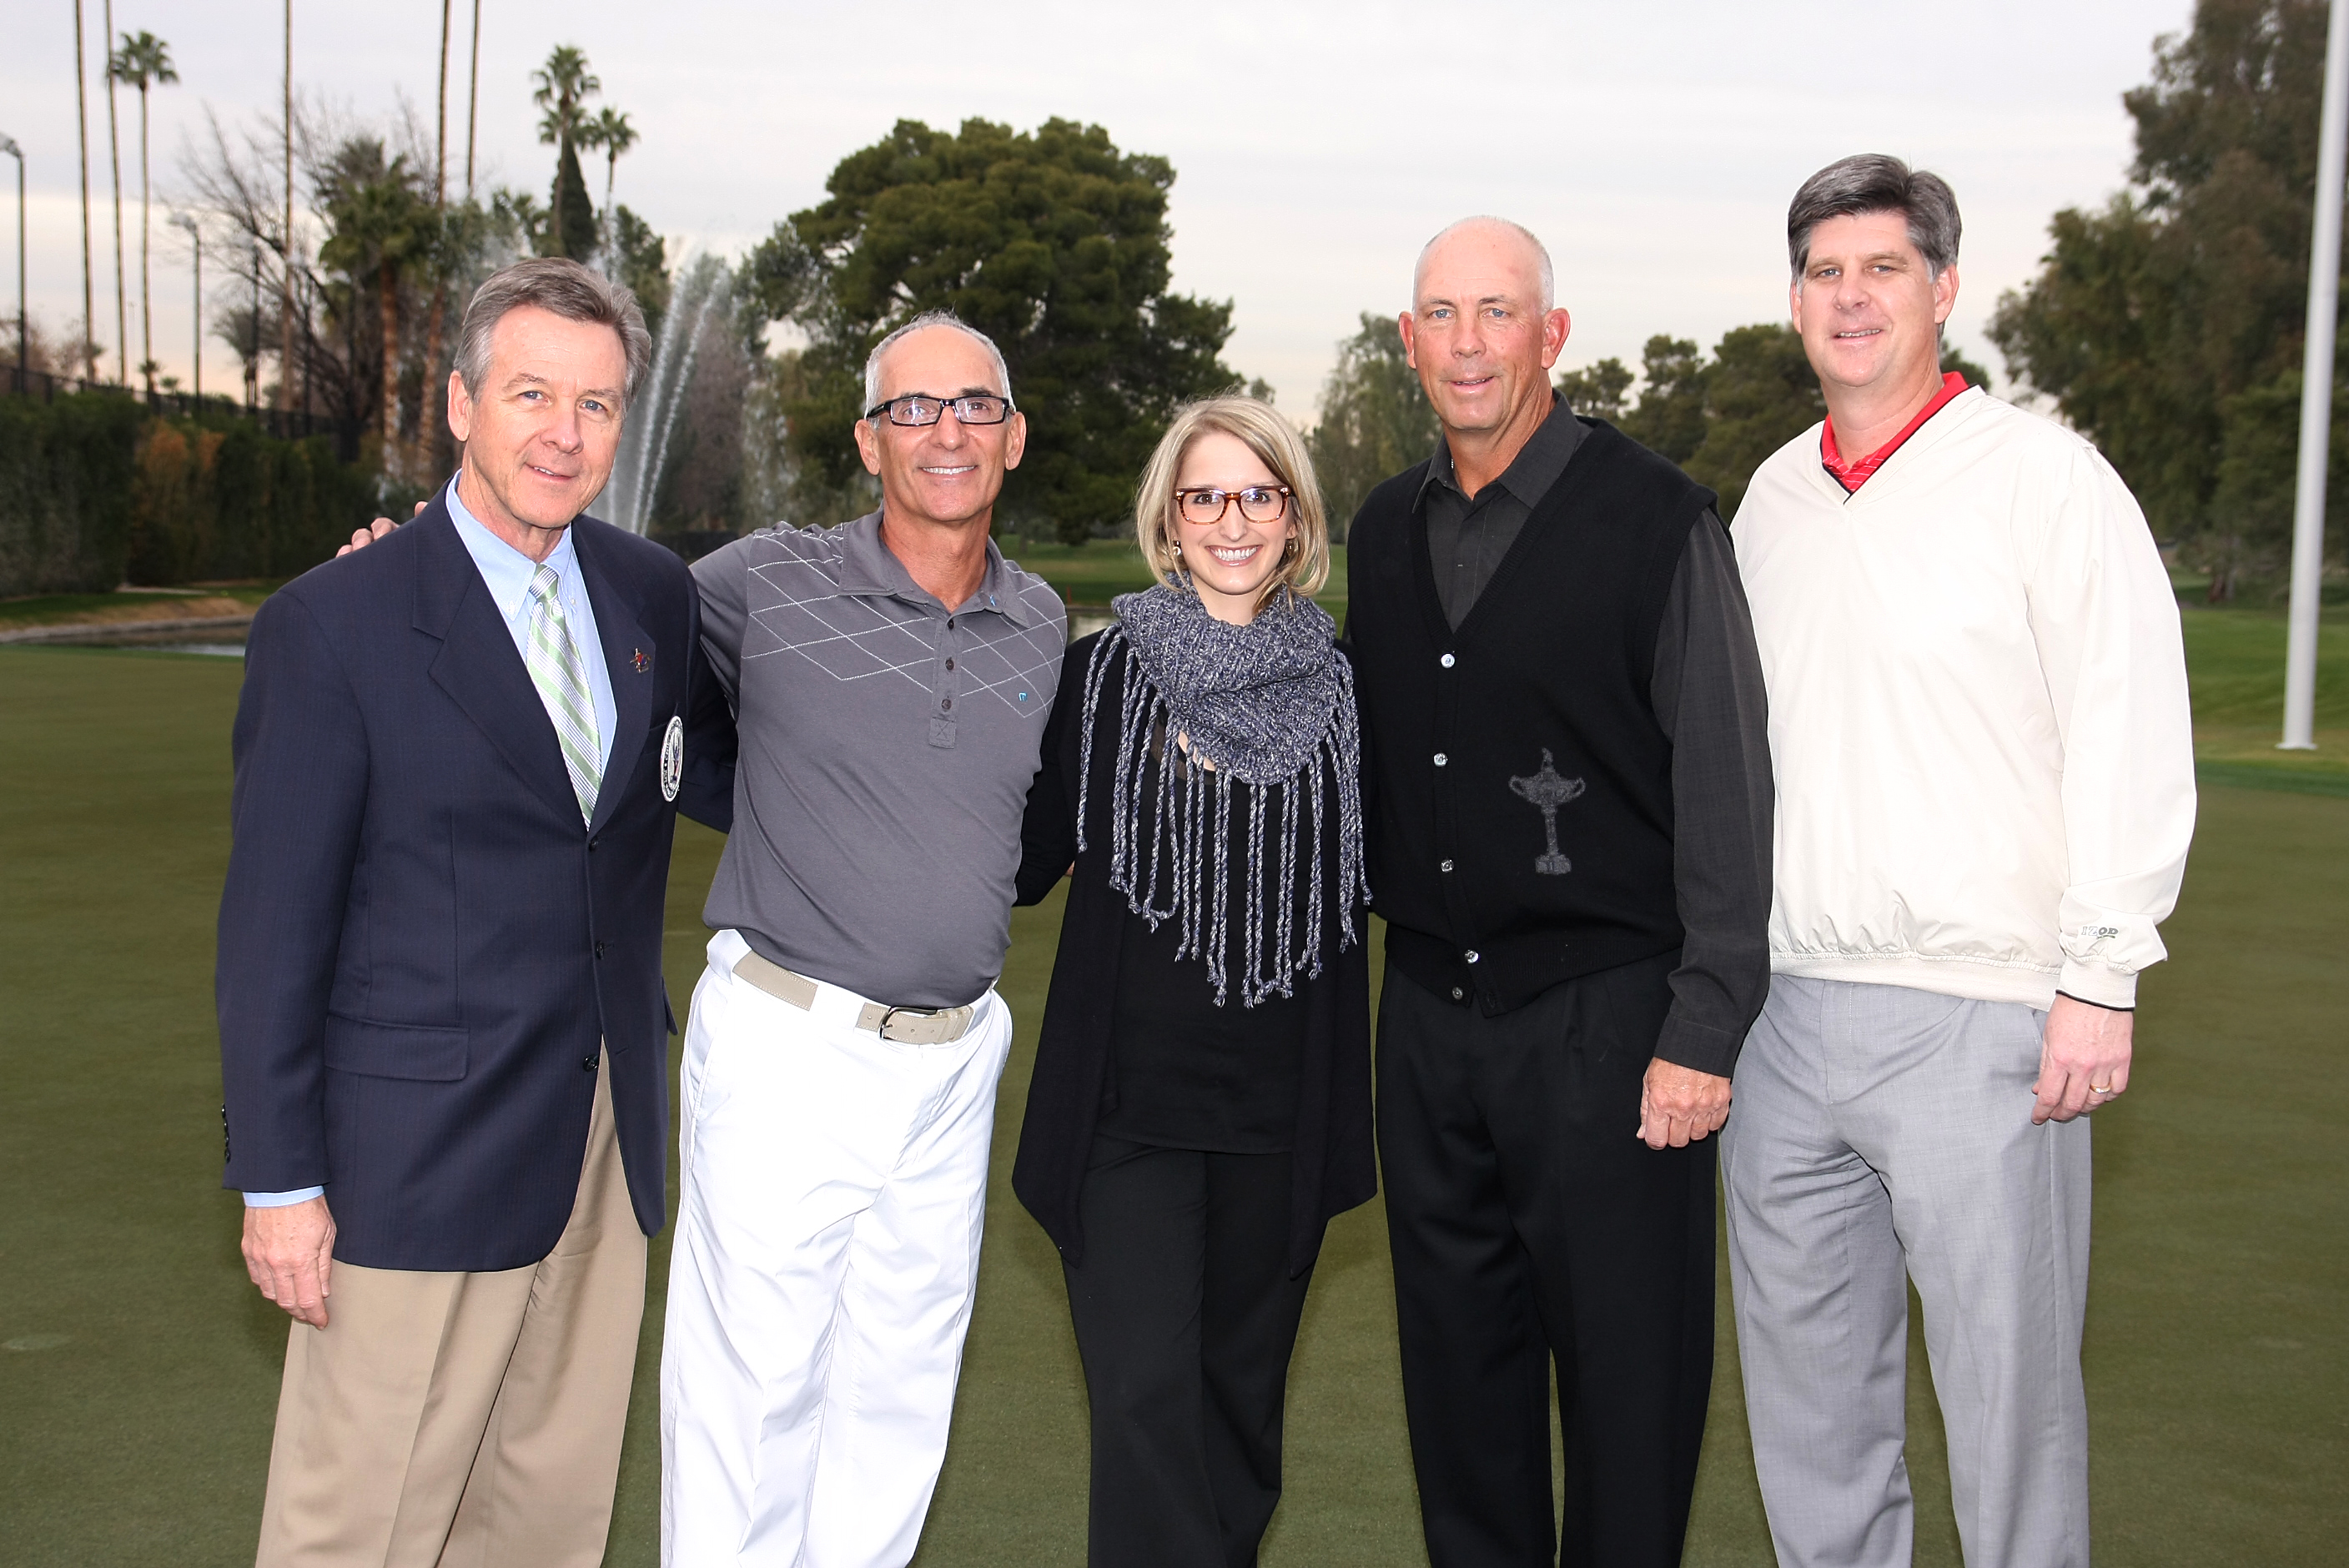 At the Phoenix Country Club History Week Pro-Am: Jeff Mangan, PCC CEO; John Spensieri, History Week Chair; Colleen Pyra, Development Director, Sojourner Center; pro golfer Tom Lehman (2011 Charles Schwab Champion); Beau Lane, VP-Board of Directors